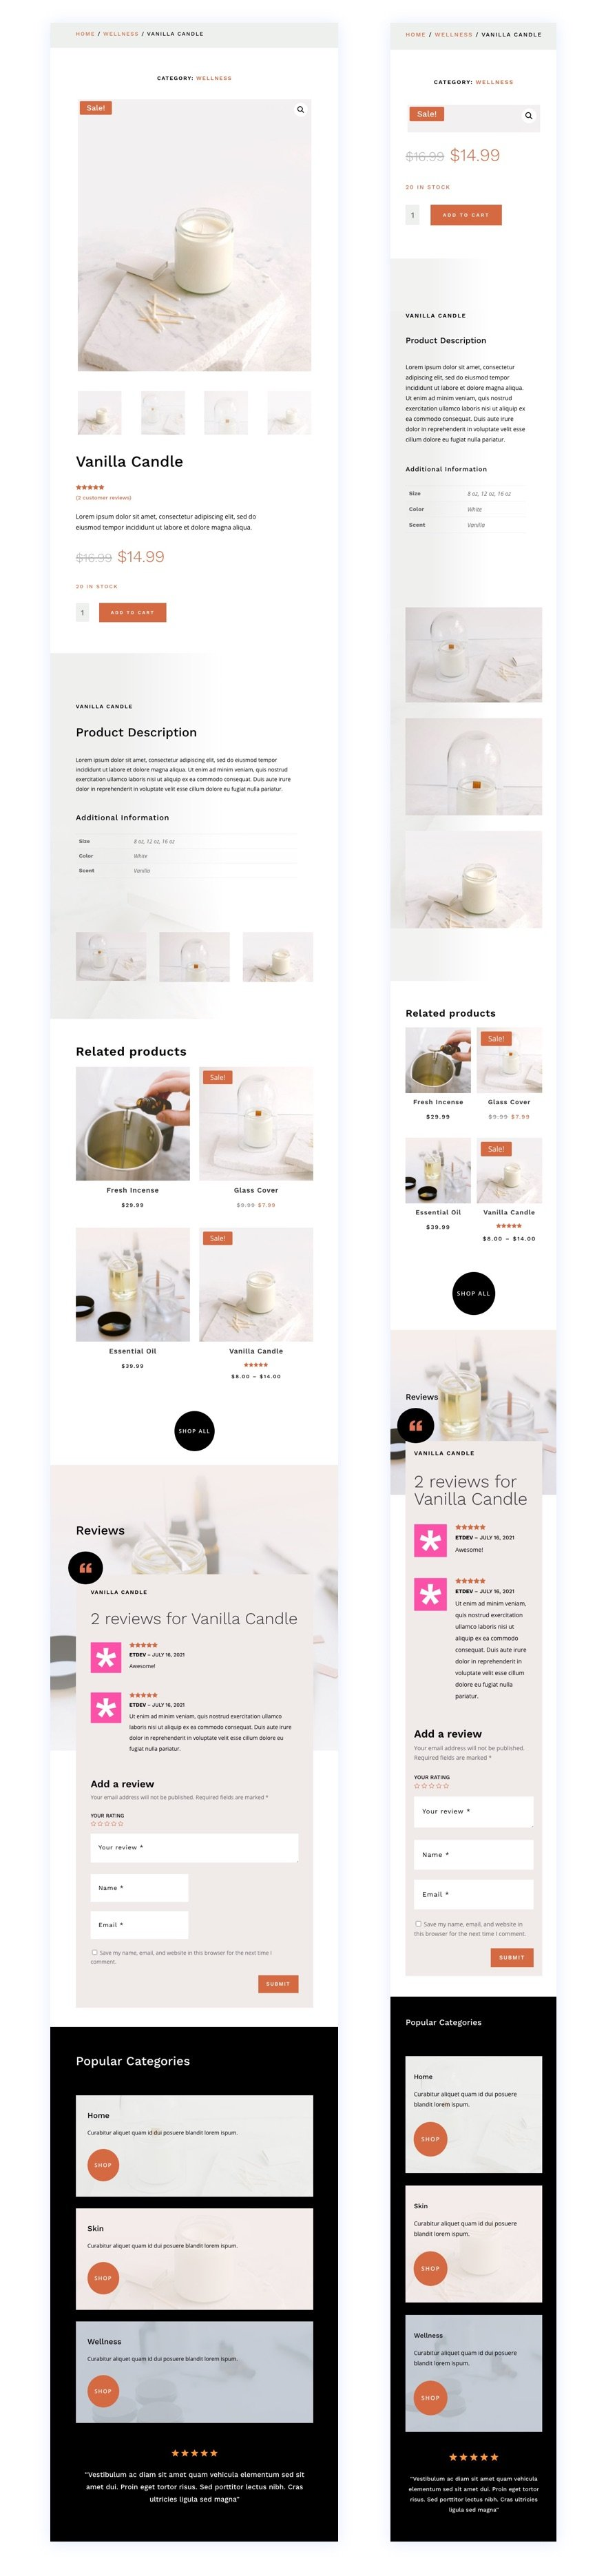 divi candle making product page template